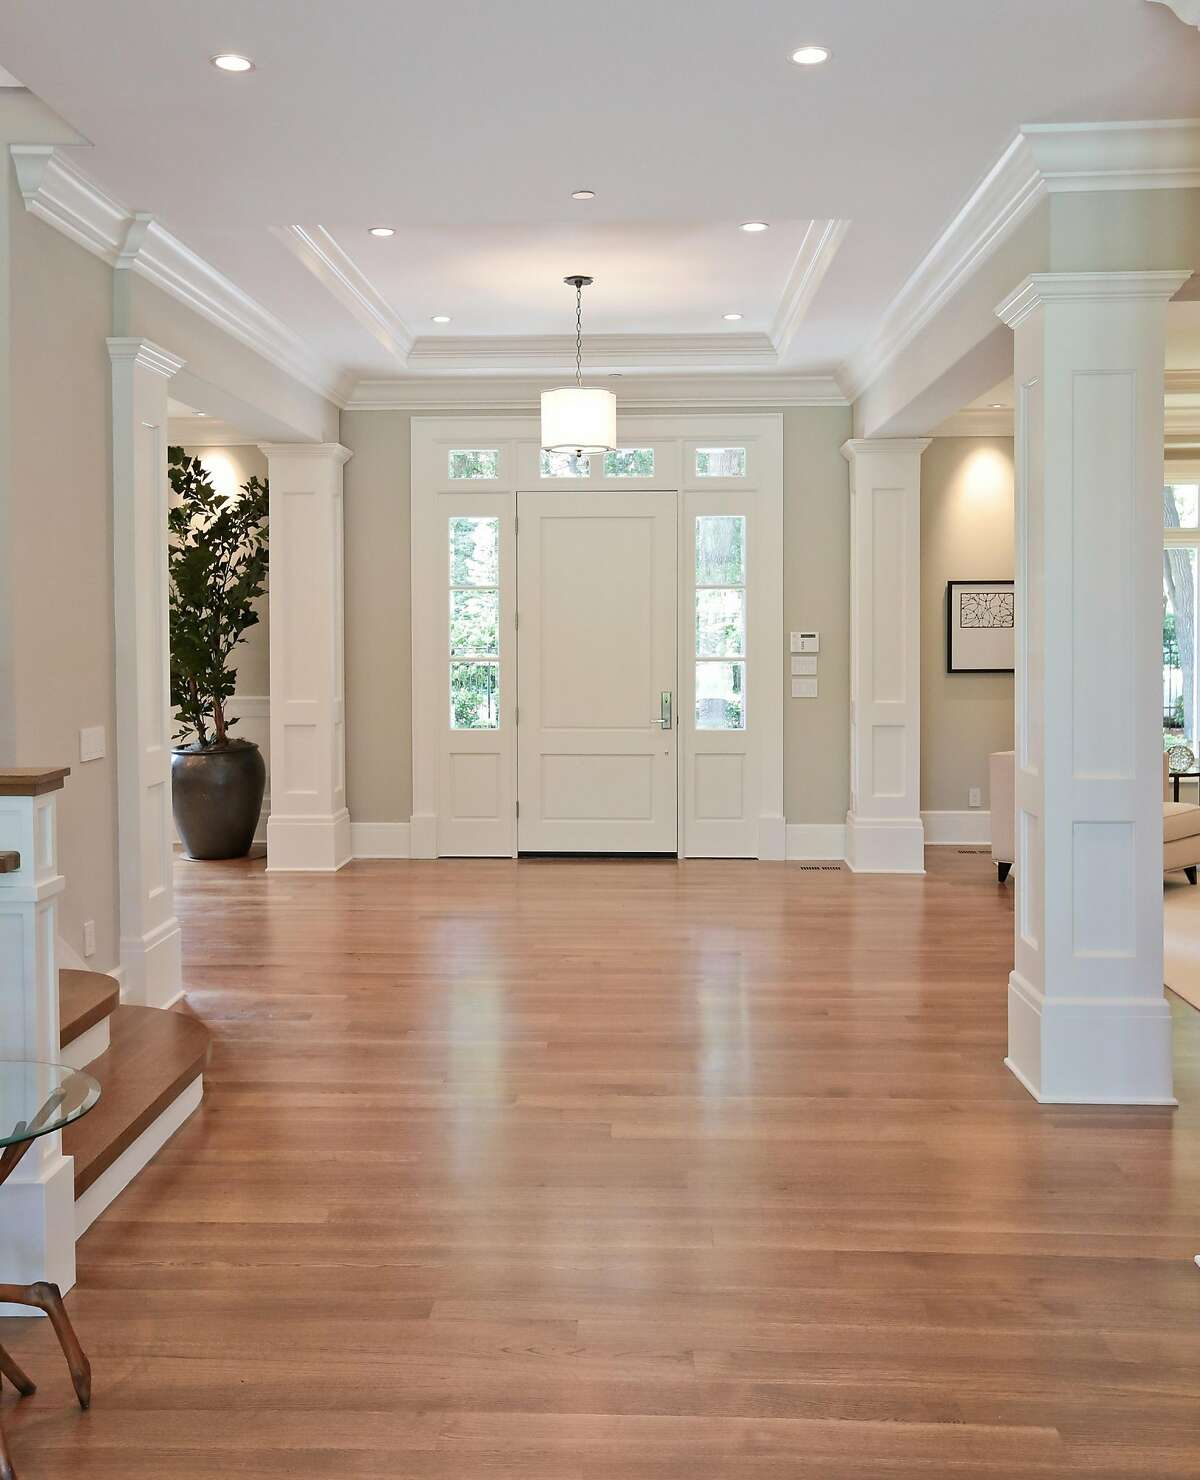 The foyer features rift-sawn white oak flooring and a coffered ceiling with a chandelier.